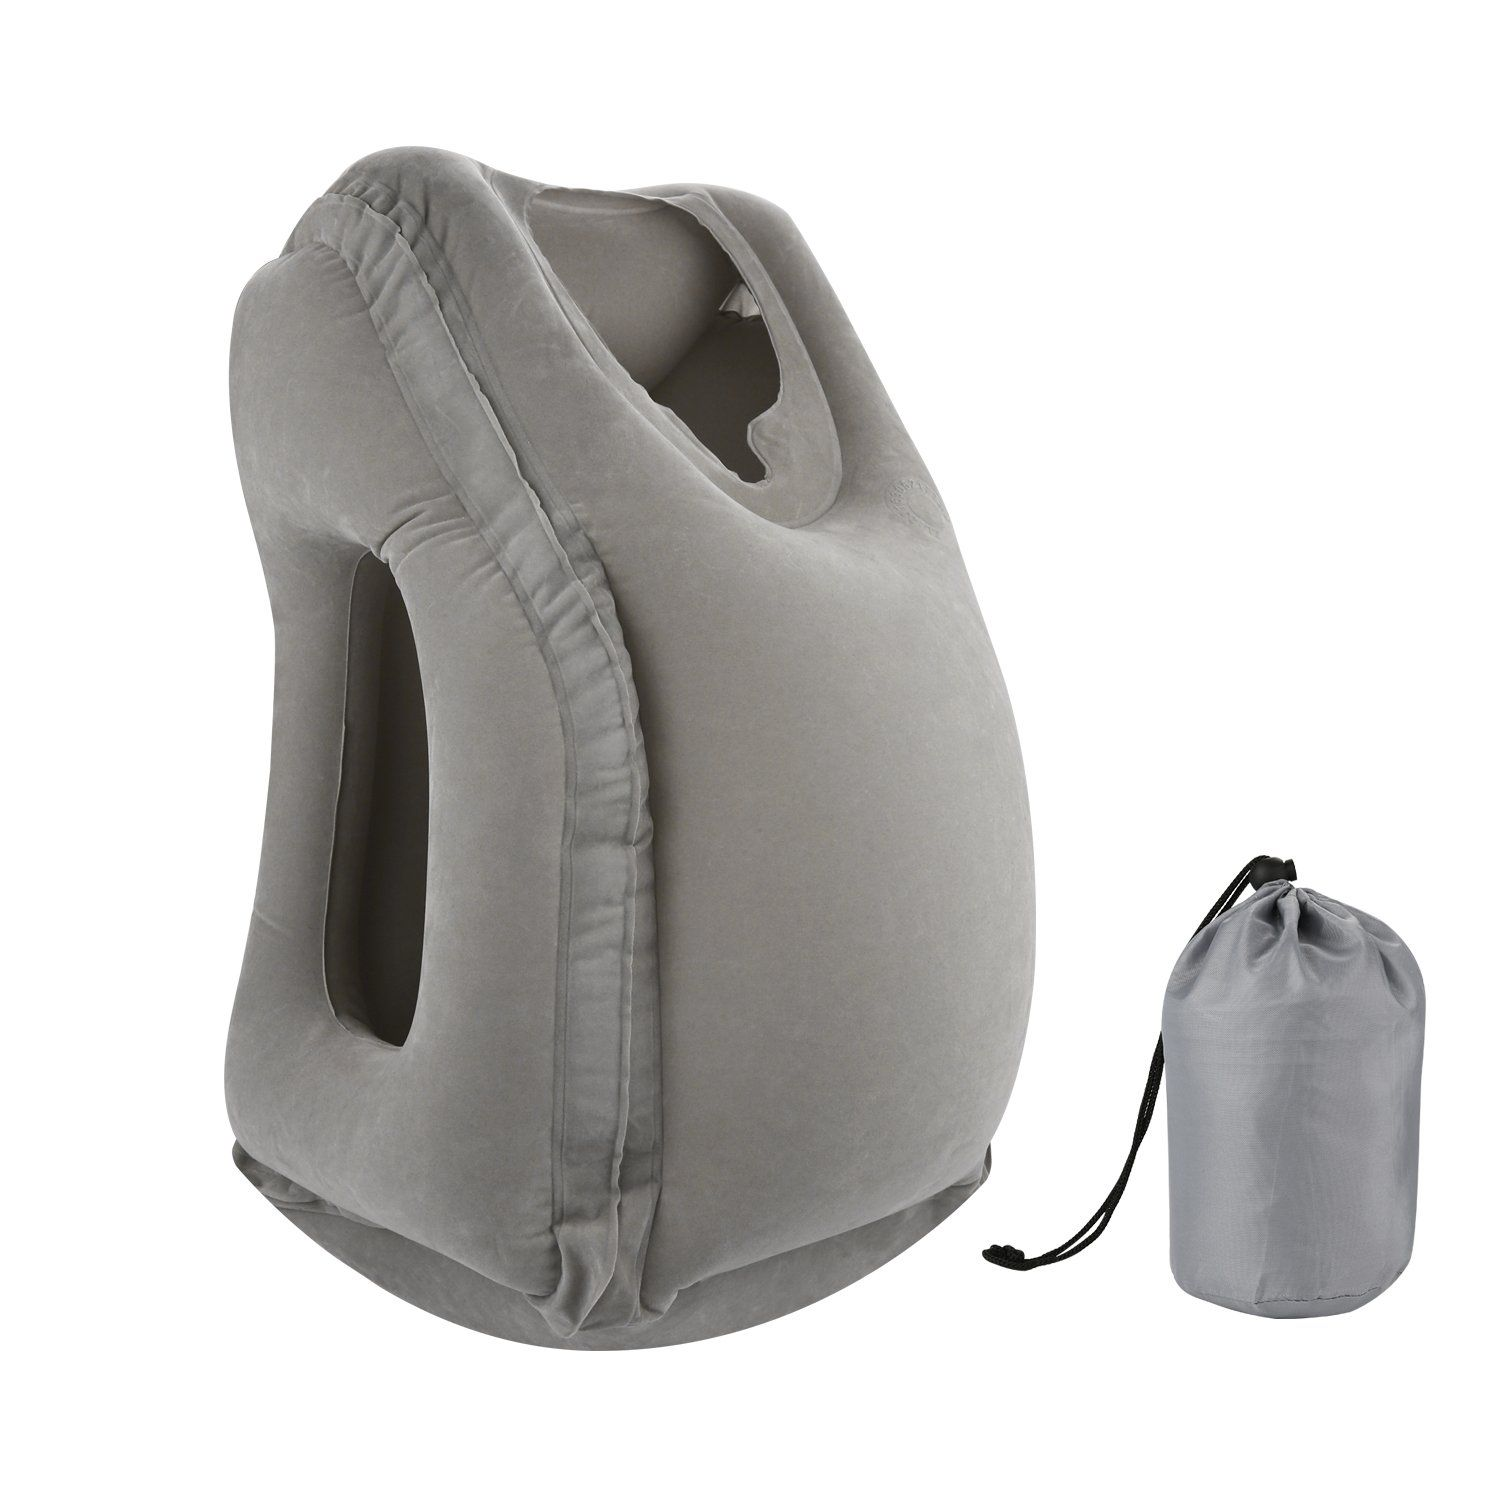 Simptech inflatable travel pillow ergonomic and portable head neck